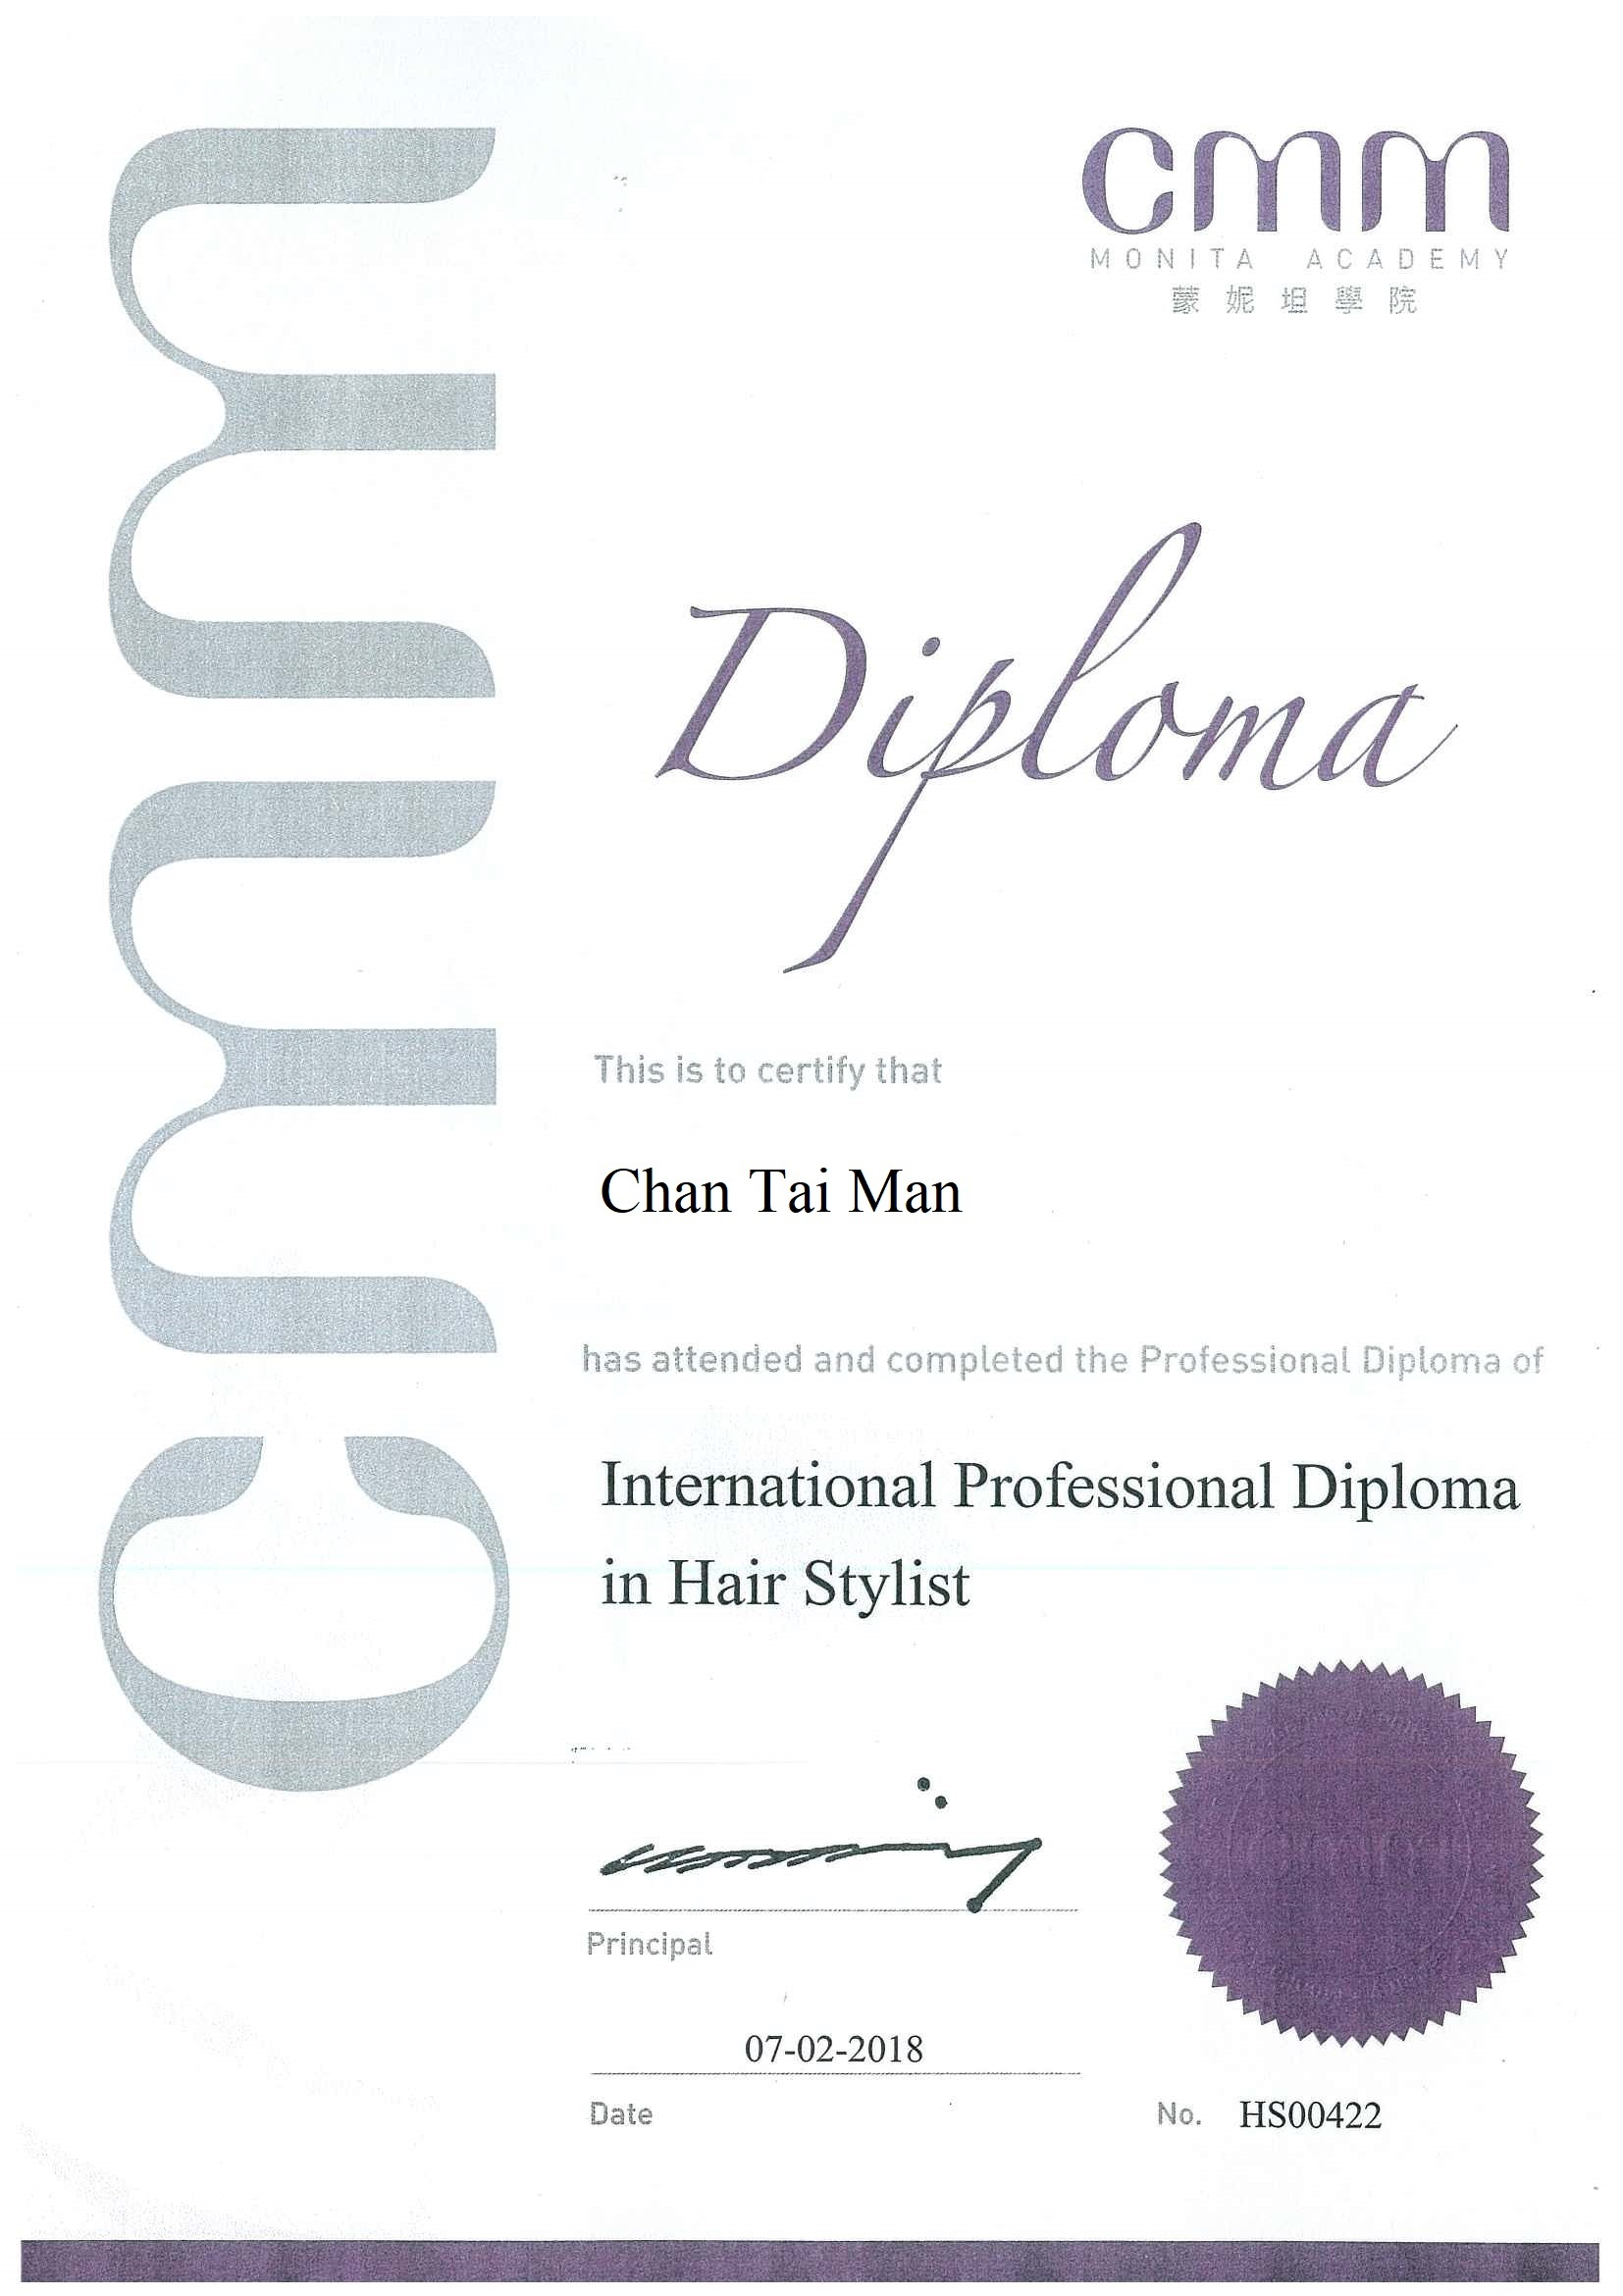 International Professional Diploma in Hair Stylist